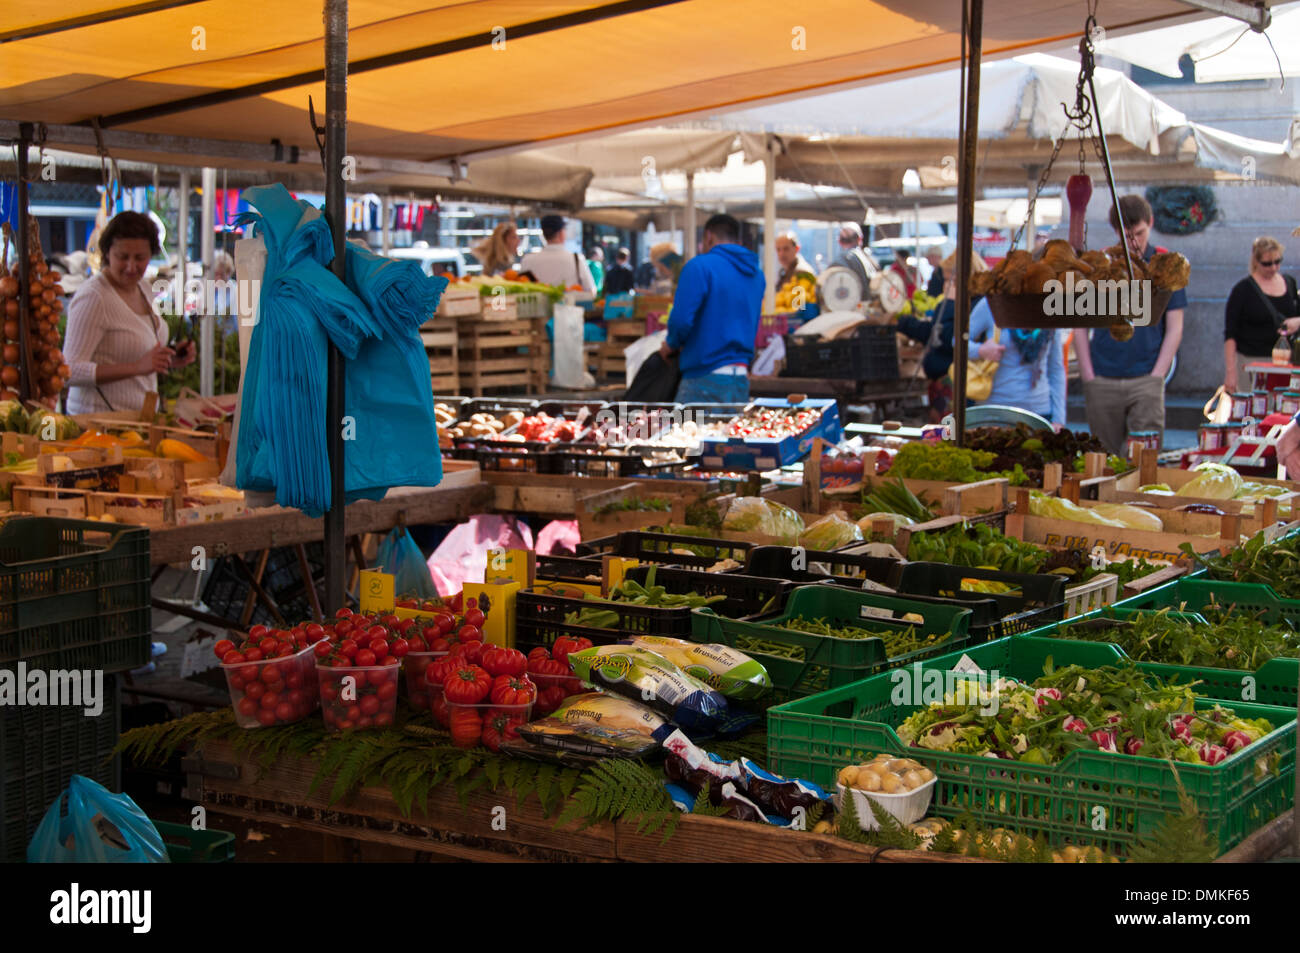 64c7fb44a4445 Vegetables for sale in the famous Campo de Fiori market in Rome - Stock  Image